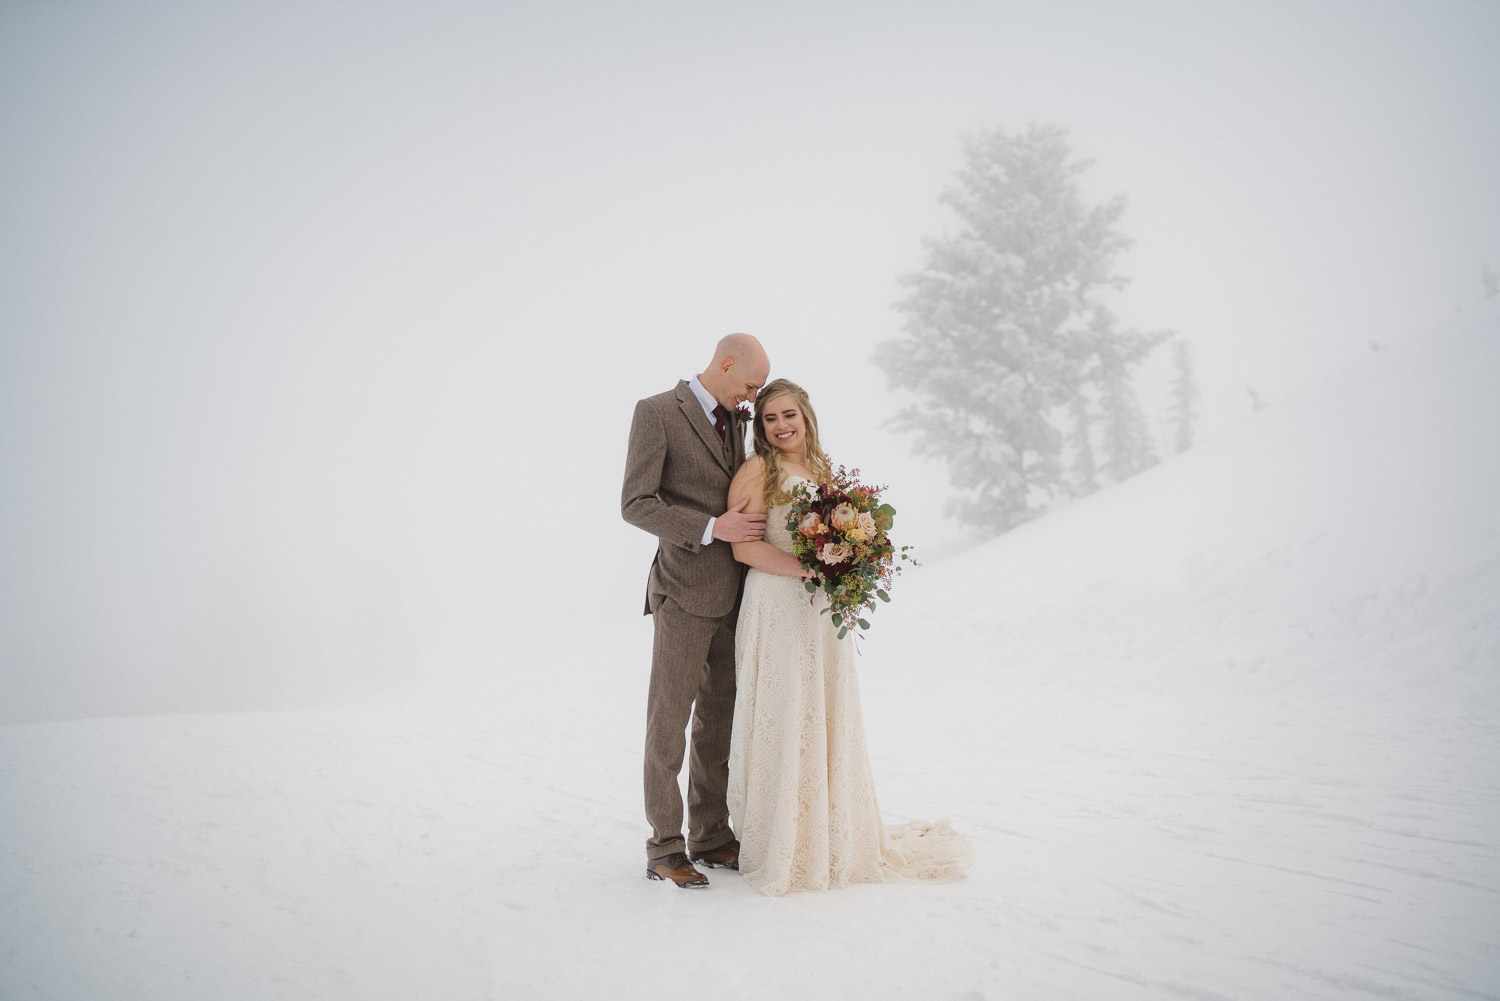 smiling bride and groom on snowy mountain snowbasin resort